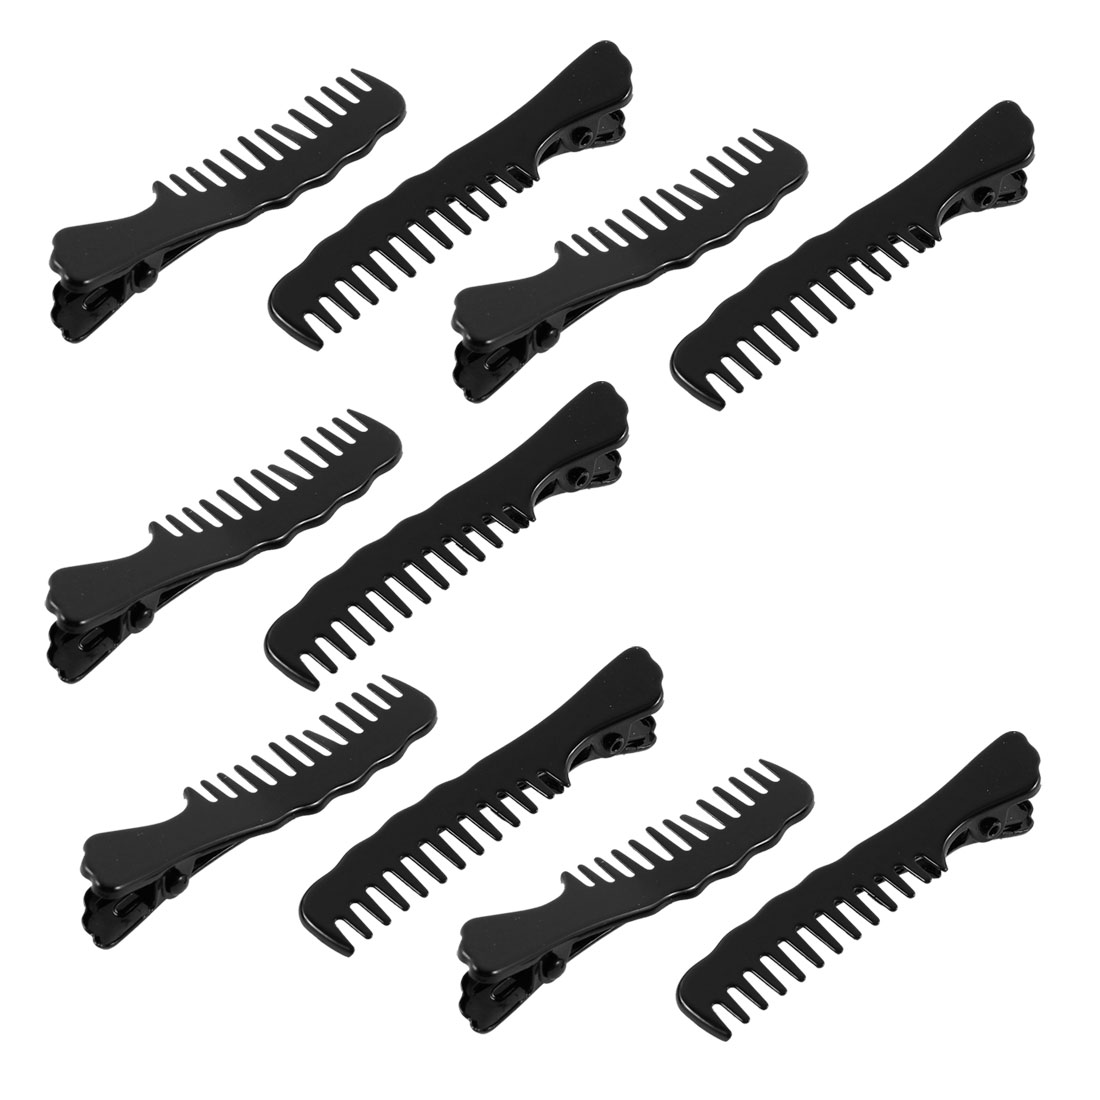 Spring Loaded Single Comb Shape Large Beak Hair Clips Alligator Barrette 10 Pcs Black